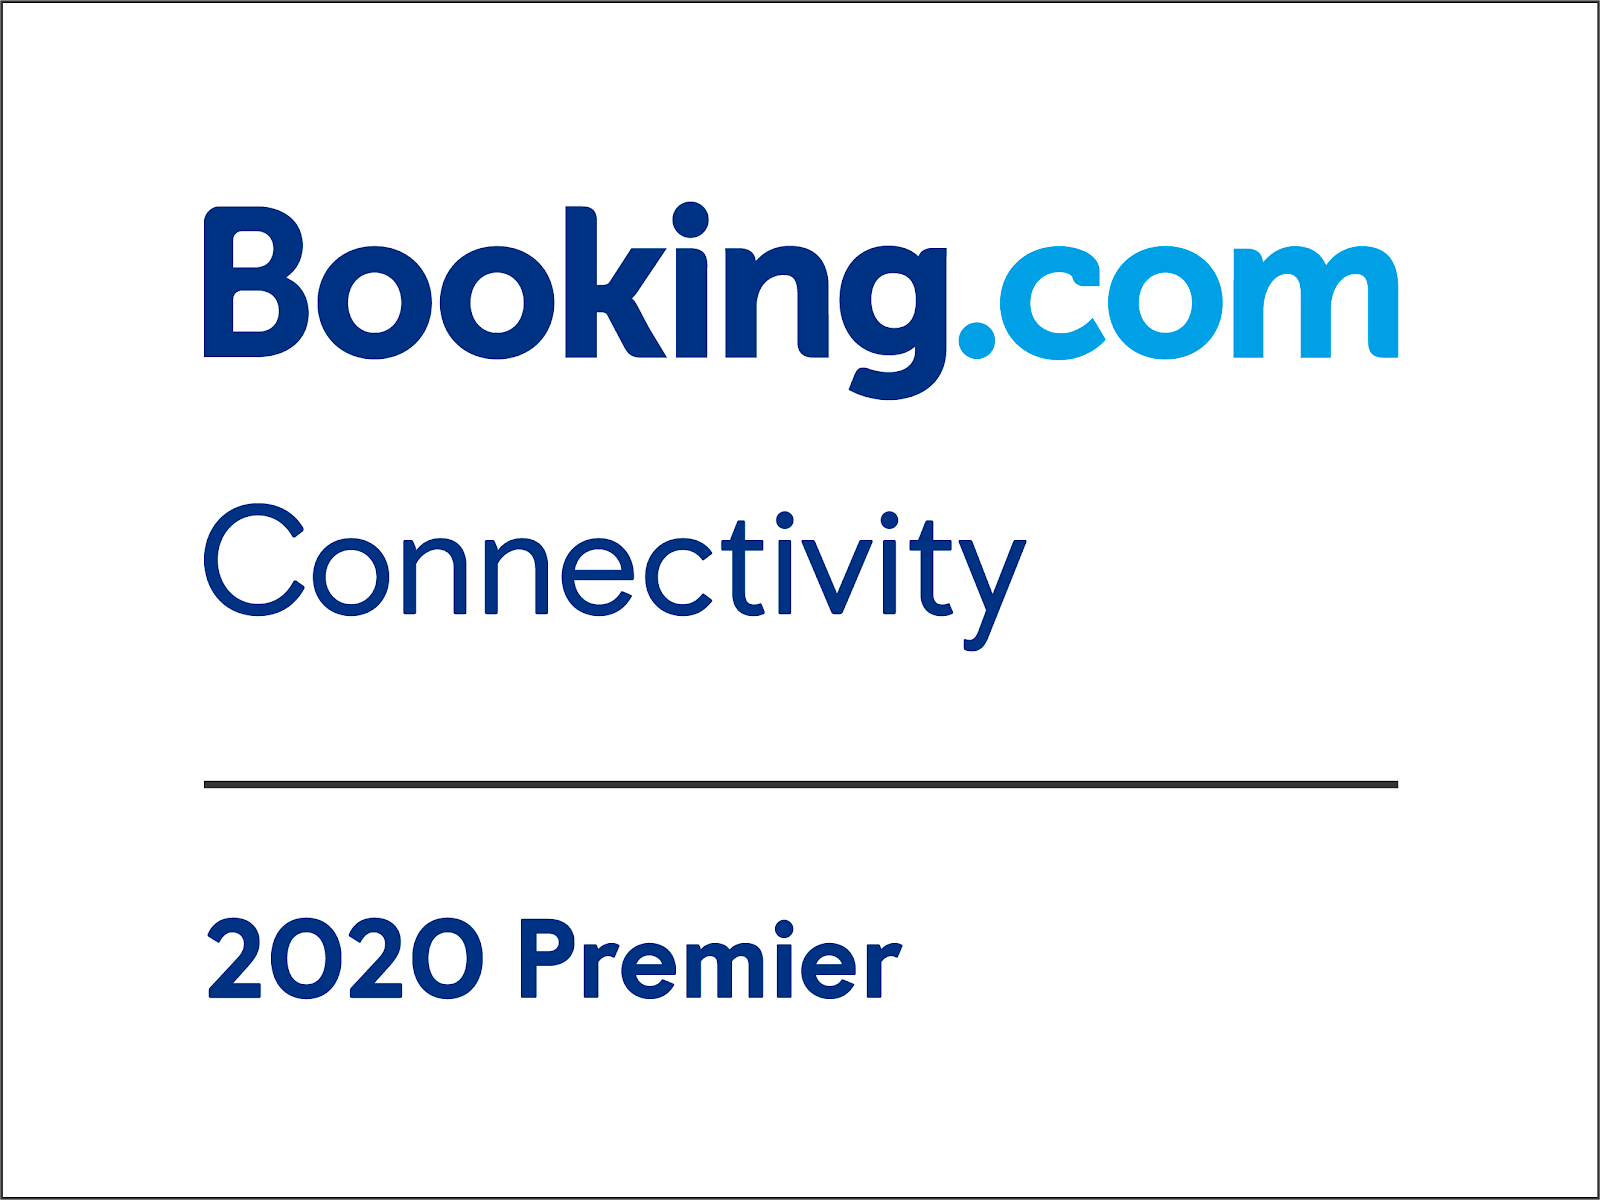 Booking.com Connectivity. 2020 Advanced. Recommended for Hosts of Vacation Rentals